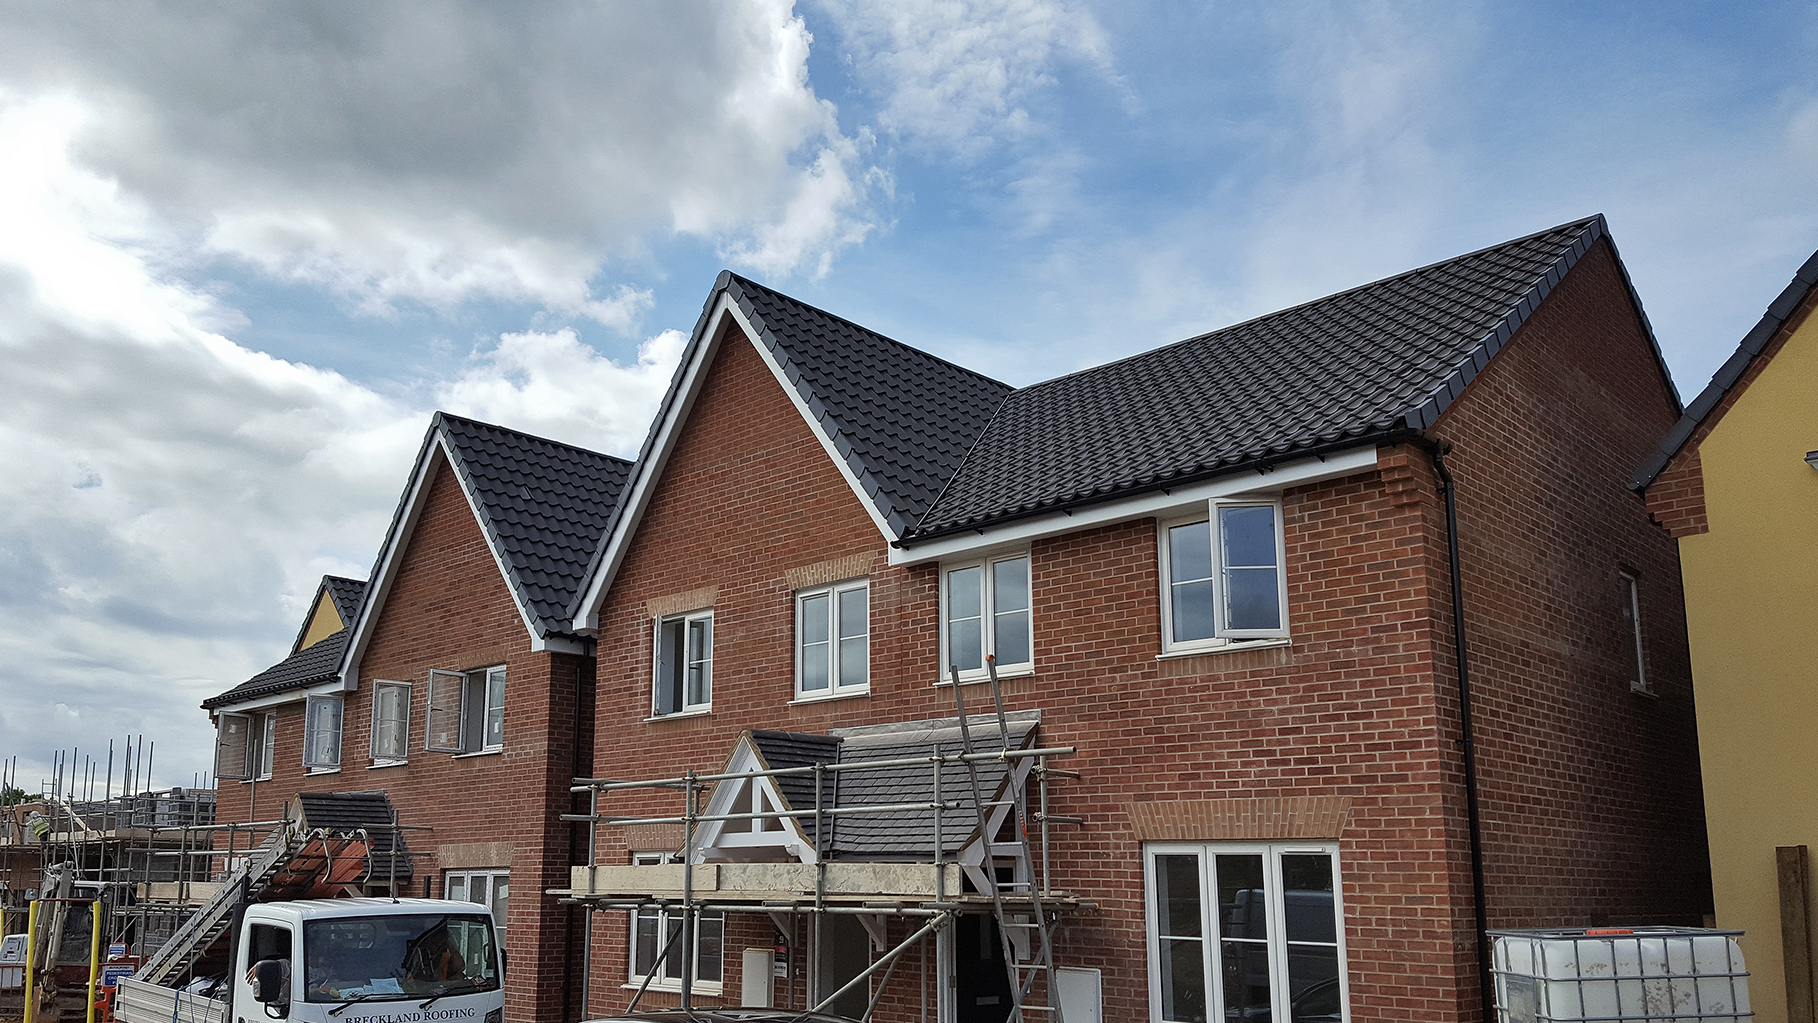 Breckland Roofing used a mixture of Hambleside Danelaw Pitched Roofing products